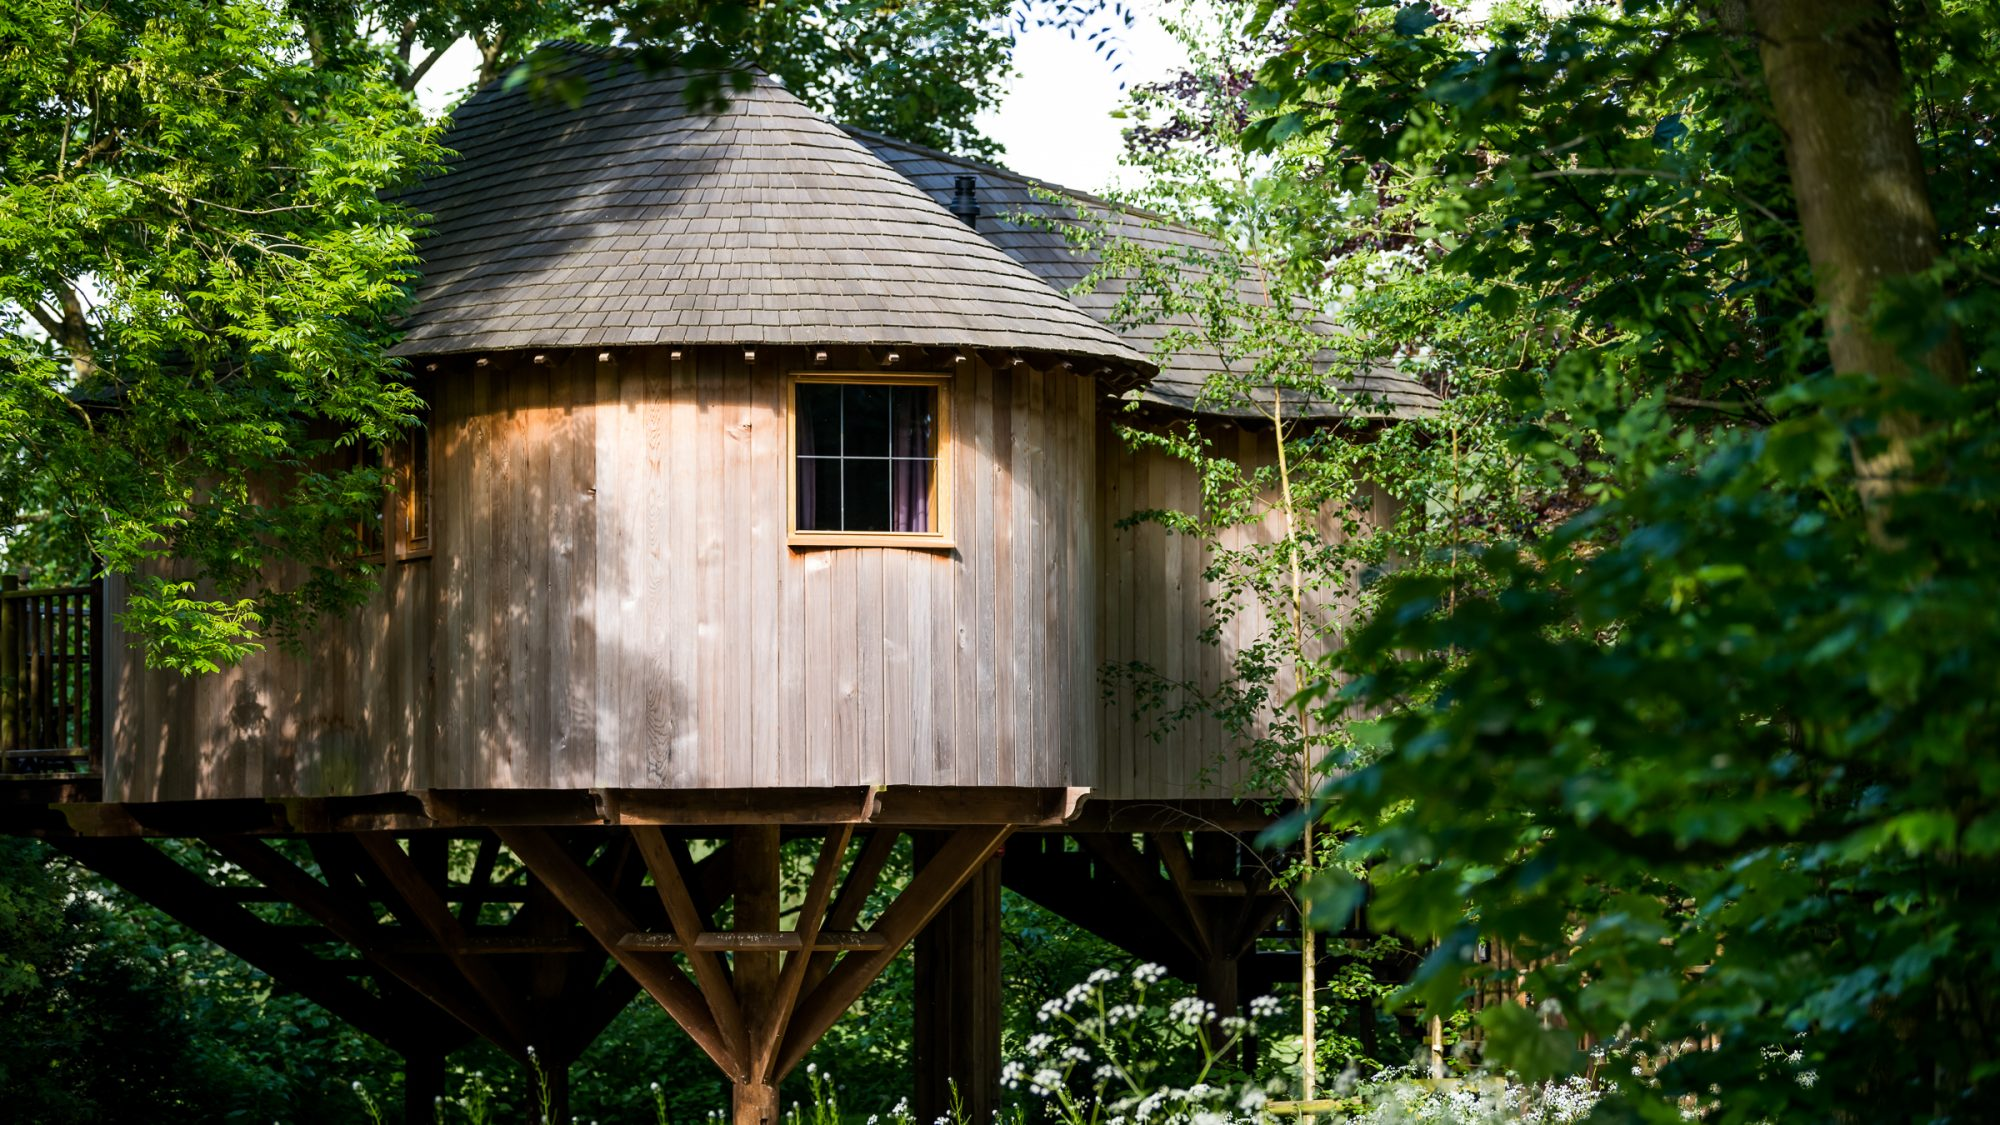 The Treehouse exterior